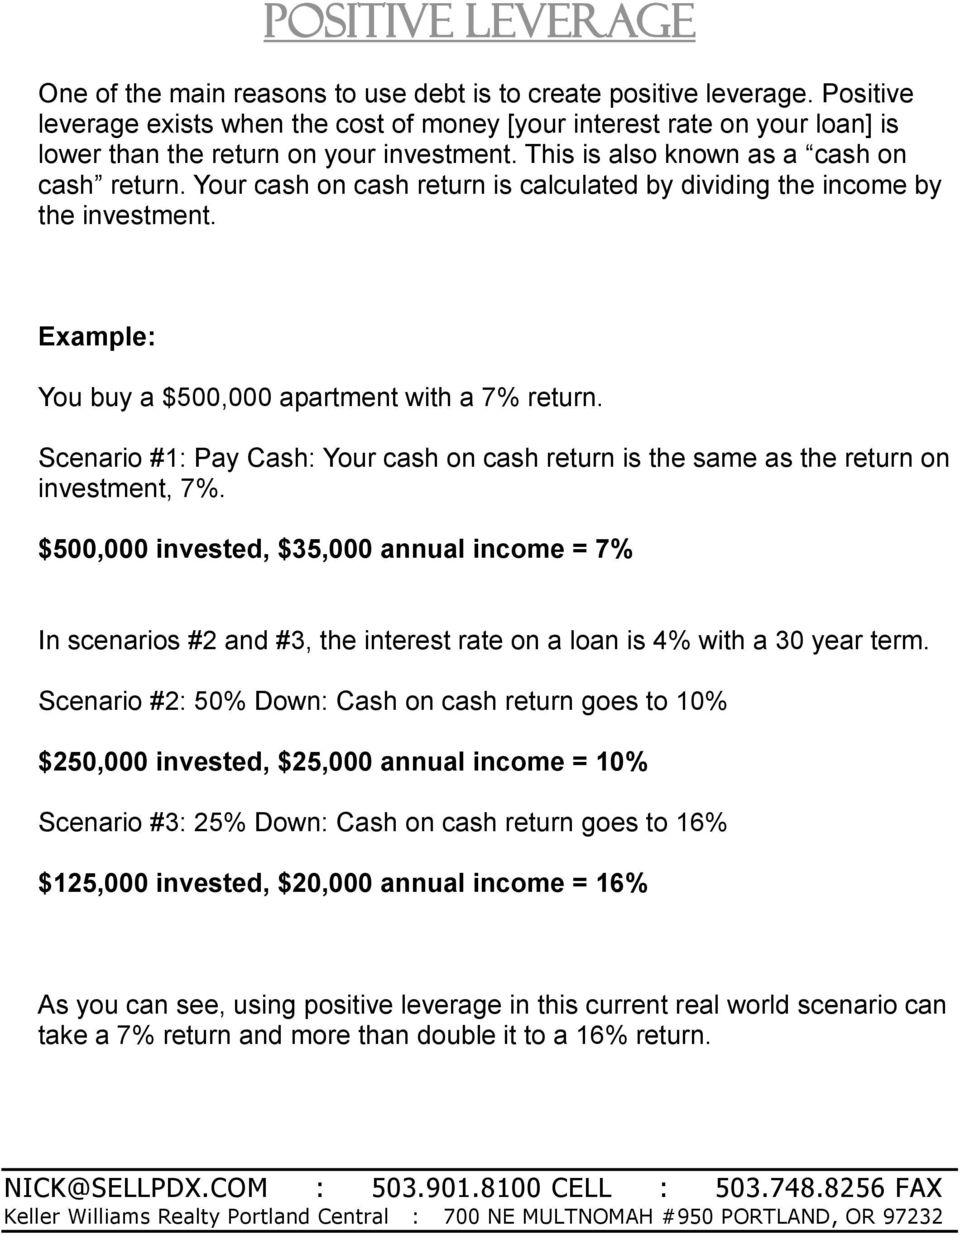 Your cash on cash return is calculated by dividing the income by the investment. Example: You buy a $500,000 apartment with a 7% return.